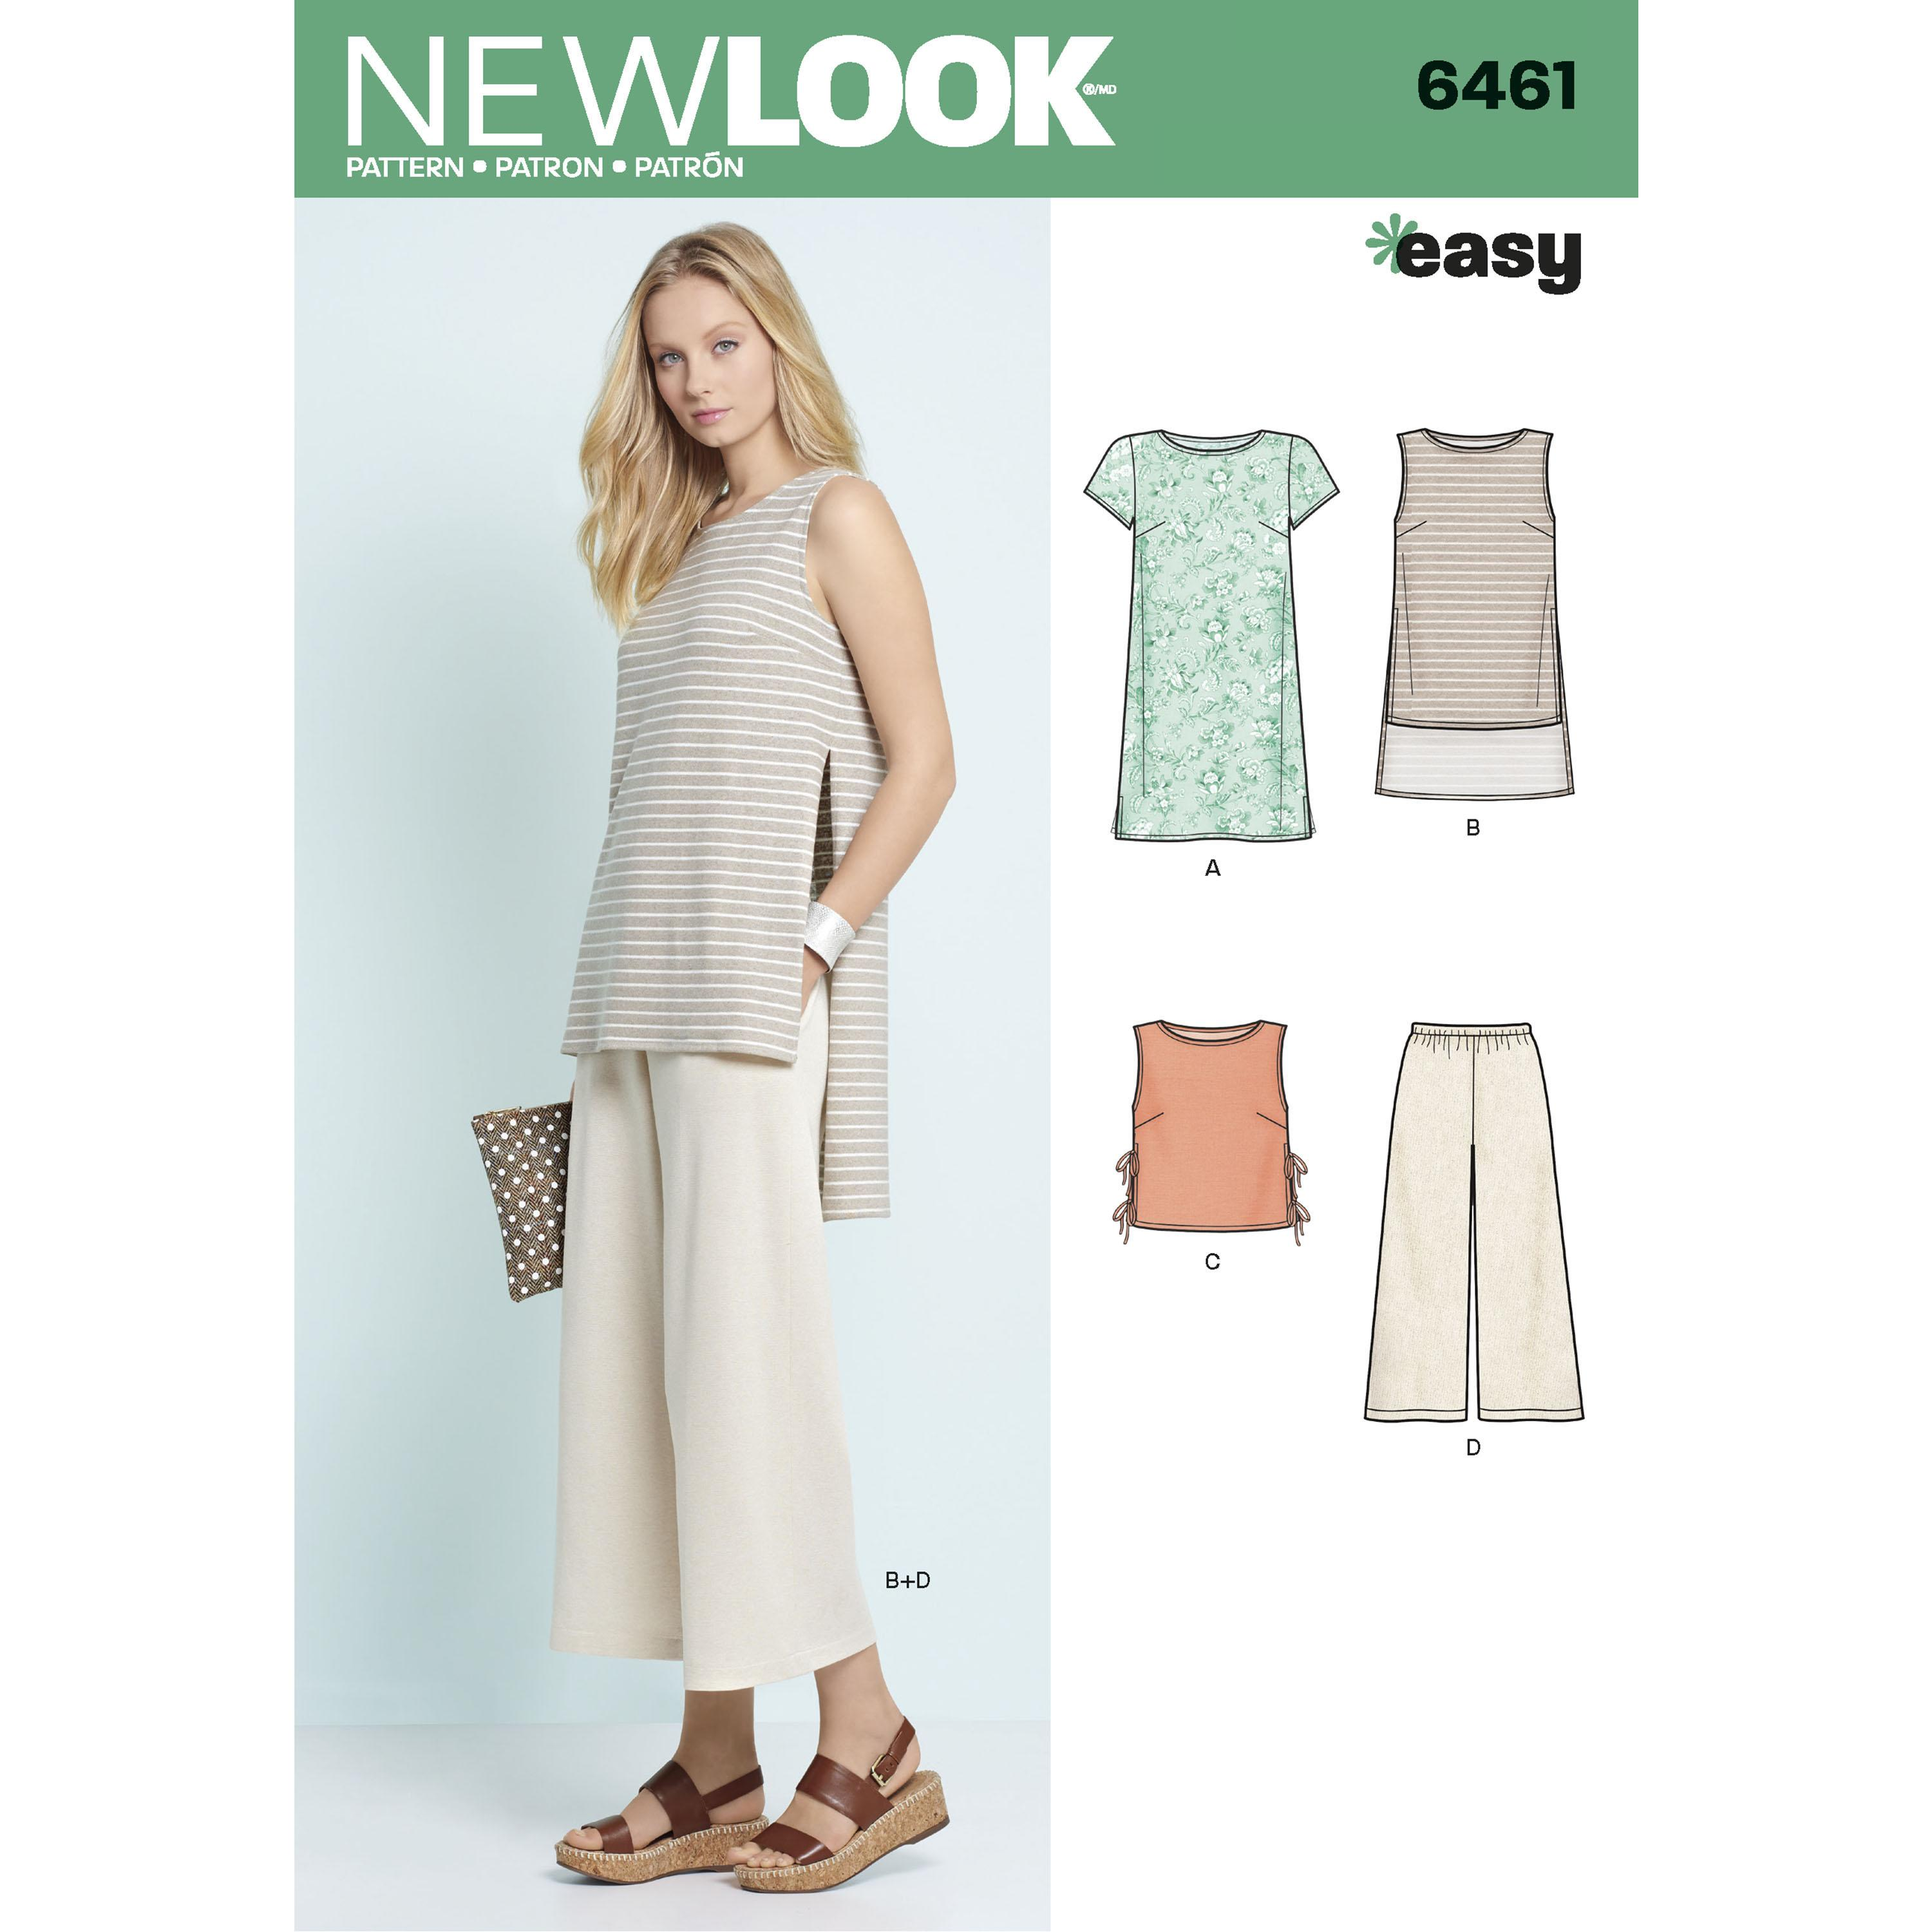 NewLook N6461 Misses' Dress, Tunic, Top and Cropped Pants